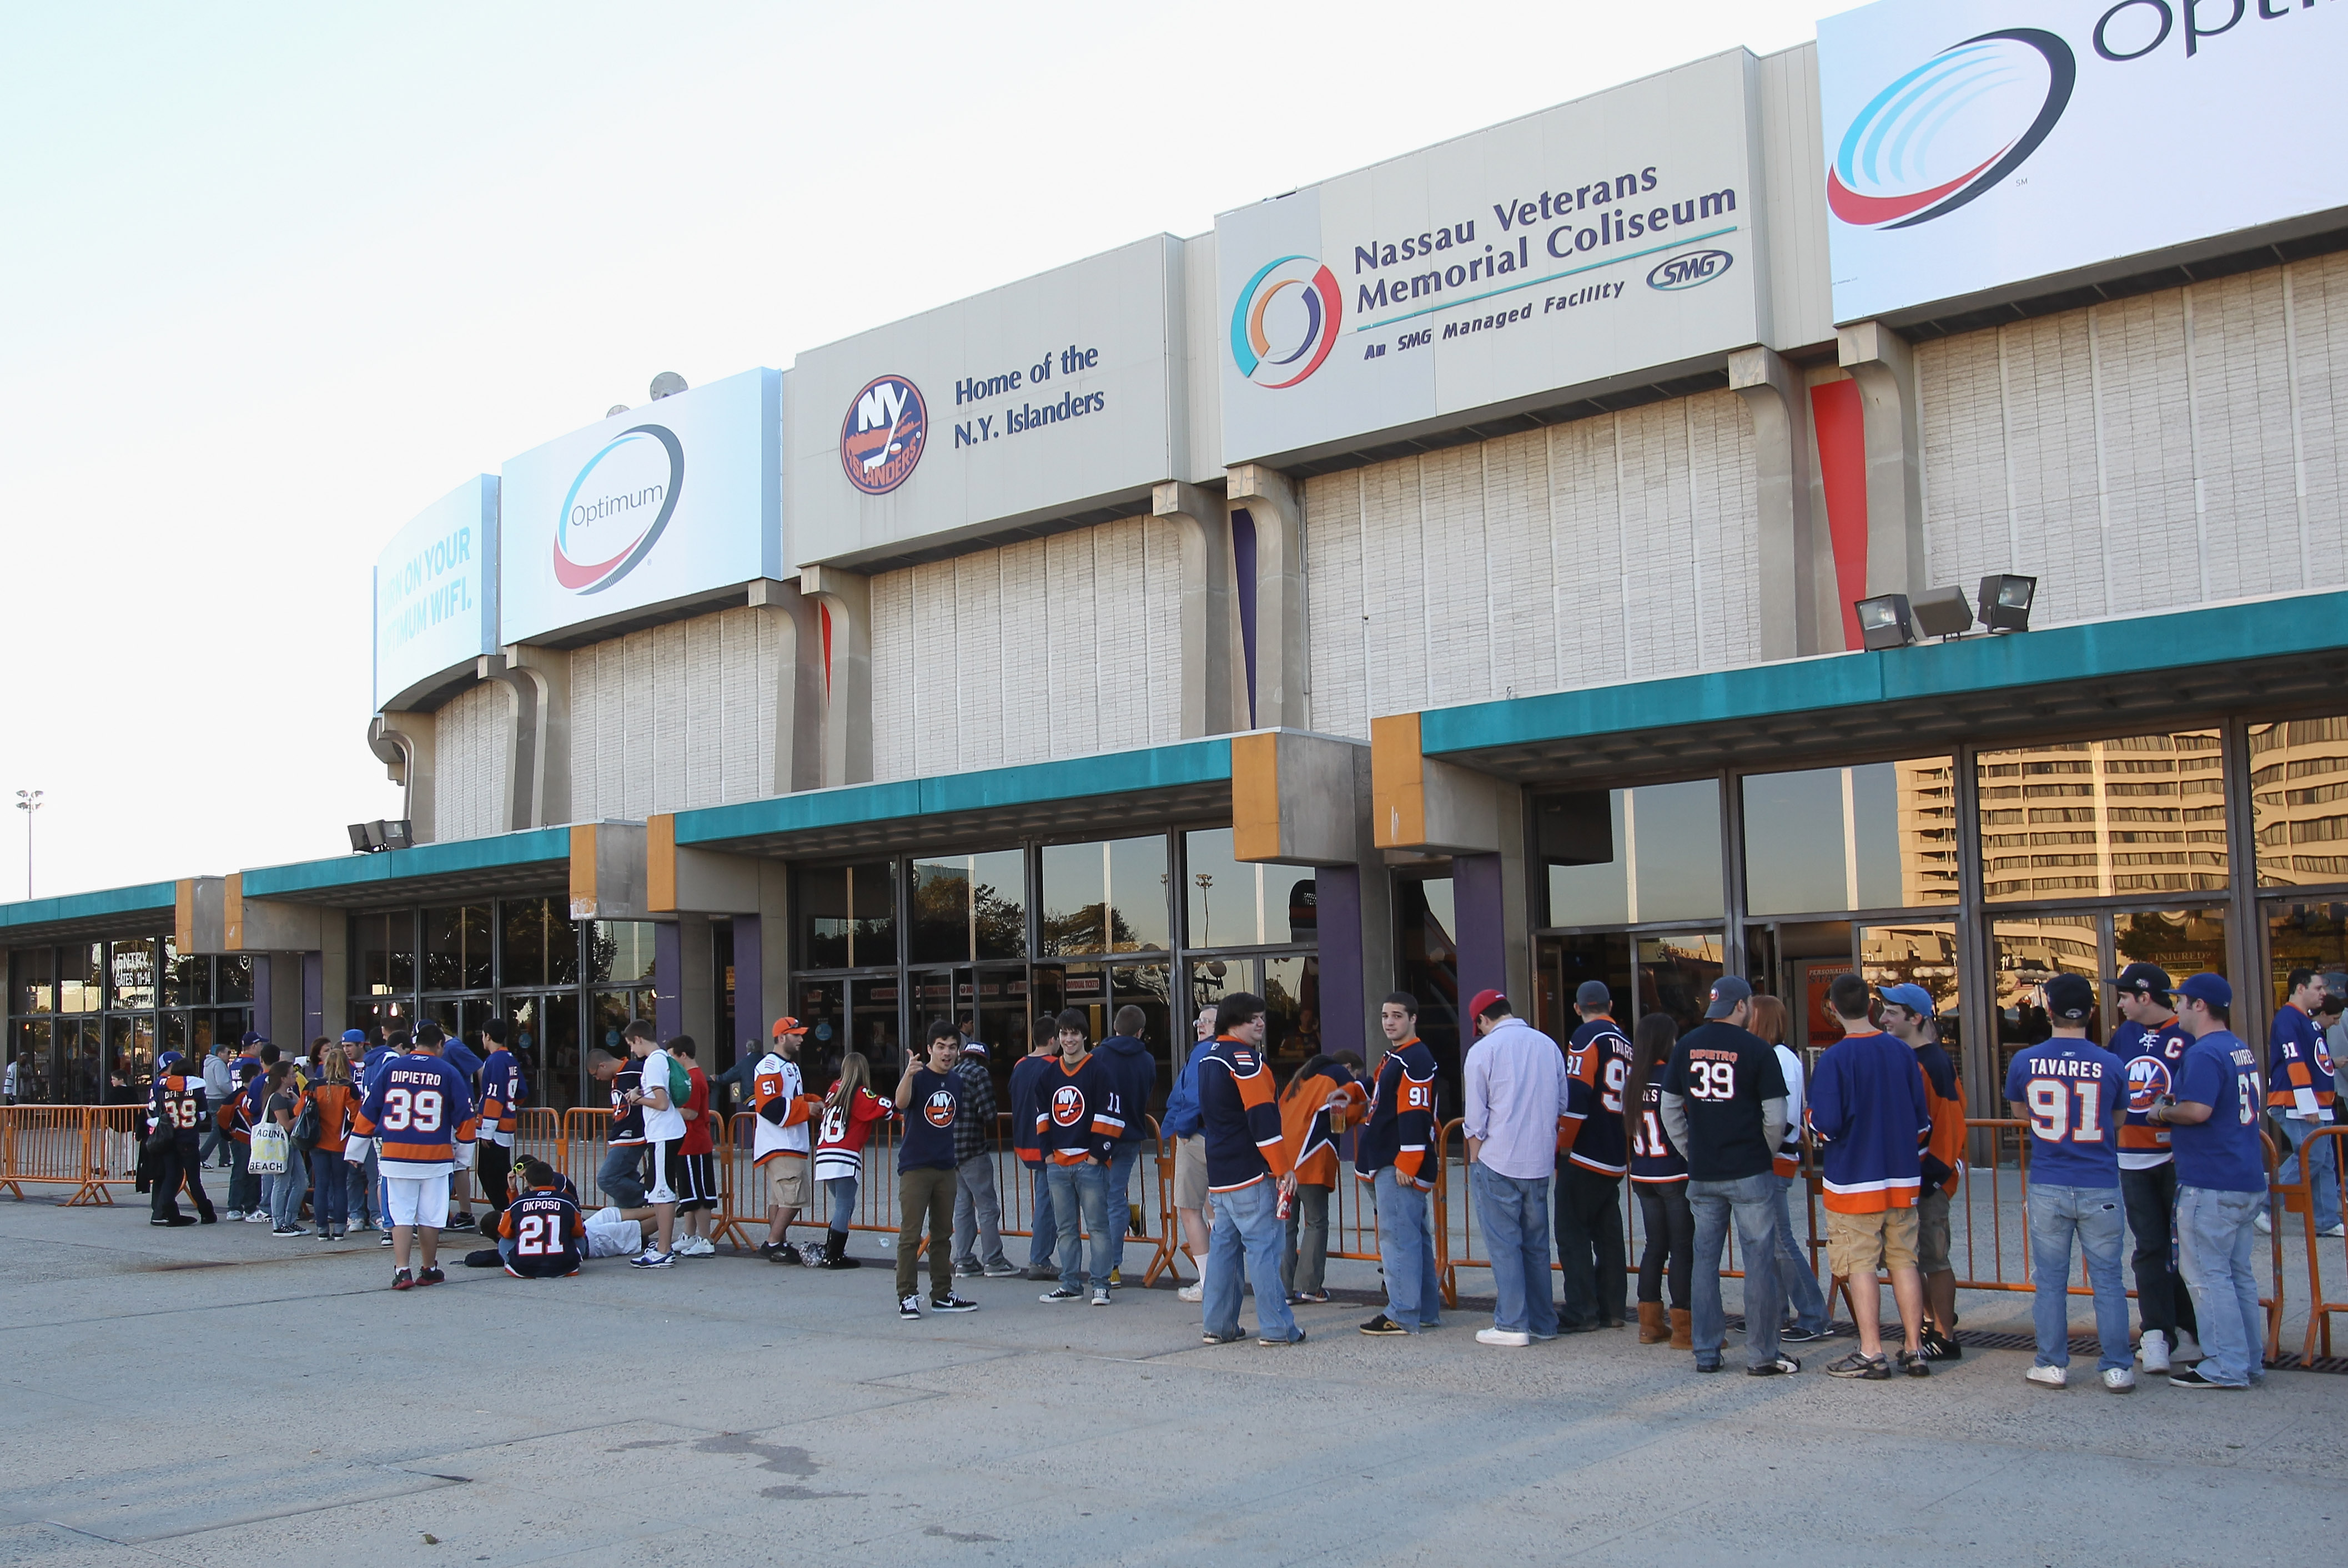 UNIONDALE, NY - OCTOBER 09: Fans line up for the New York Islanders home opener against the Dallas Stars at the Nassau Coliseum on October 9, 2010 in Uniondale, New York. (Photo by Bruce Bennett/Getty Images)